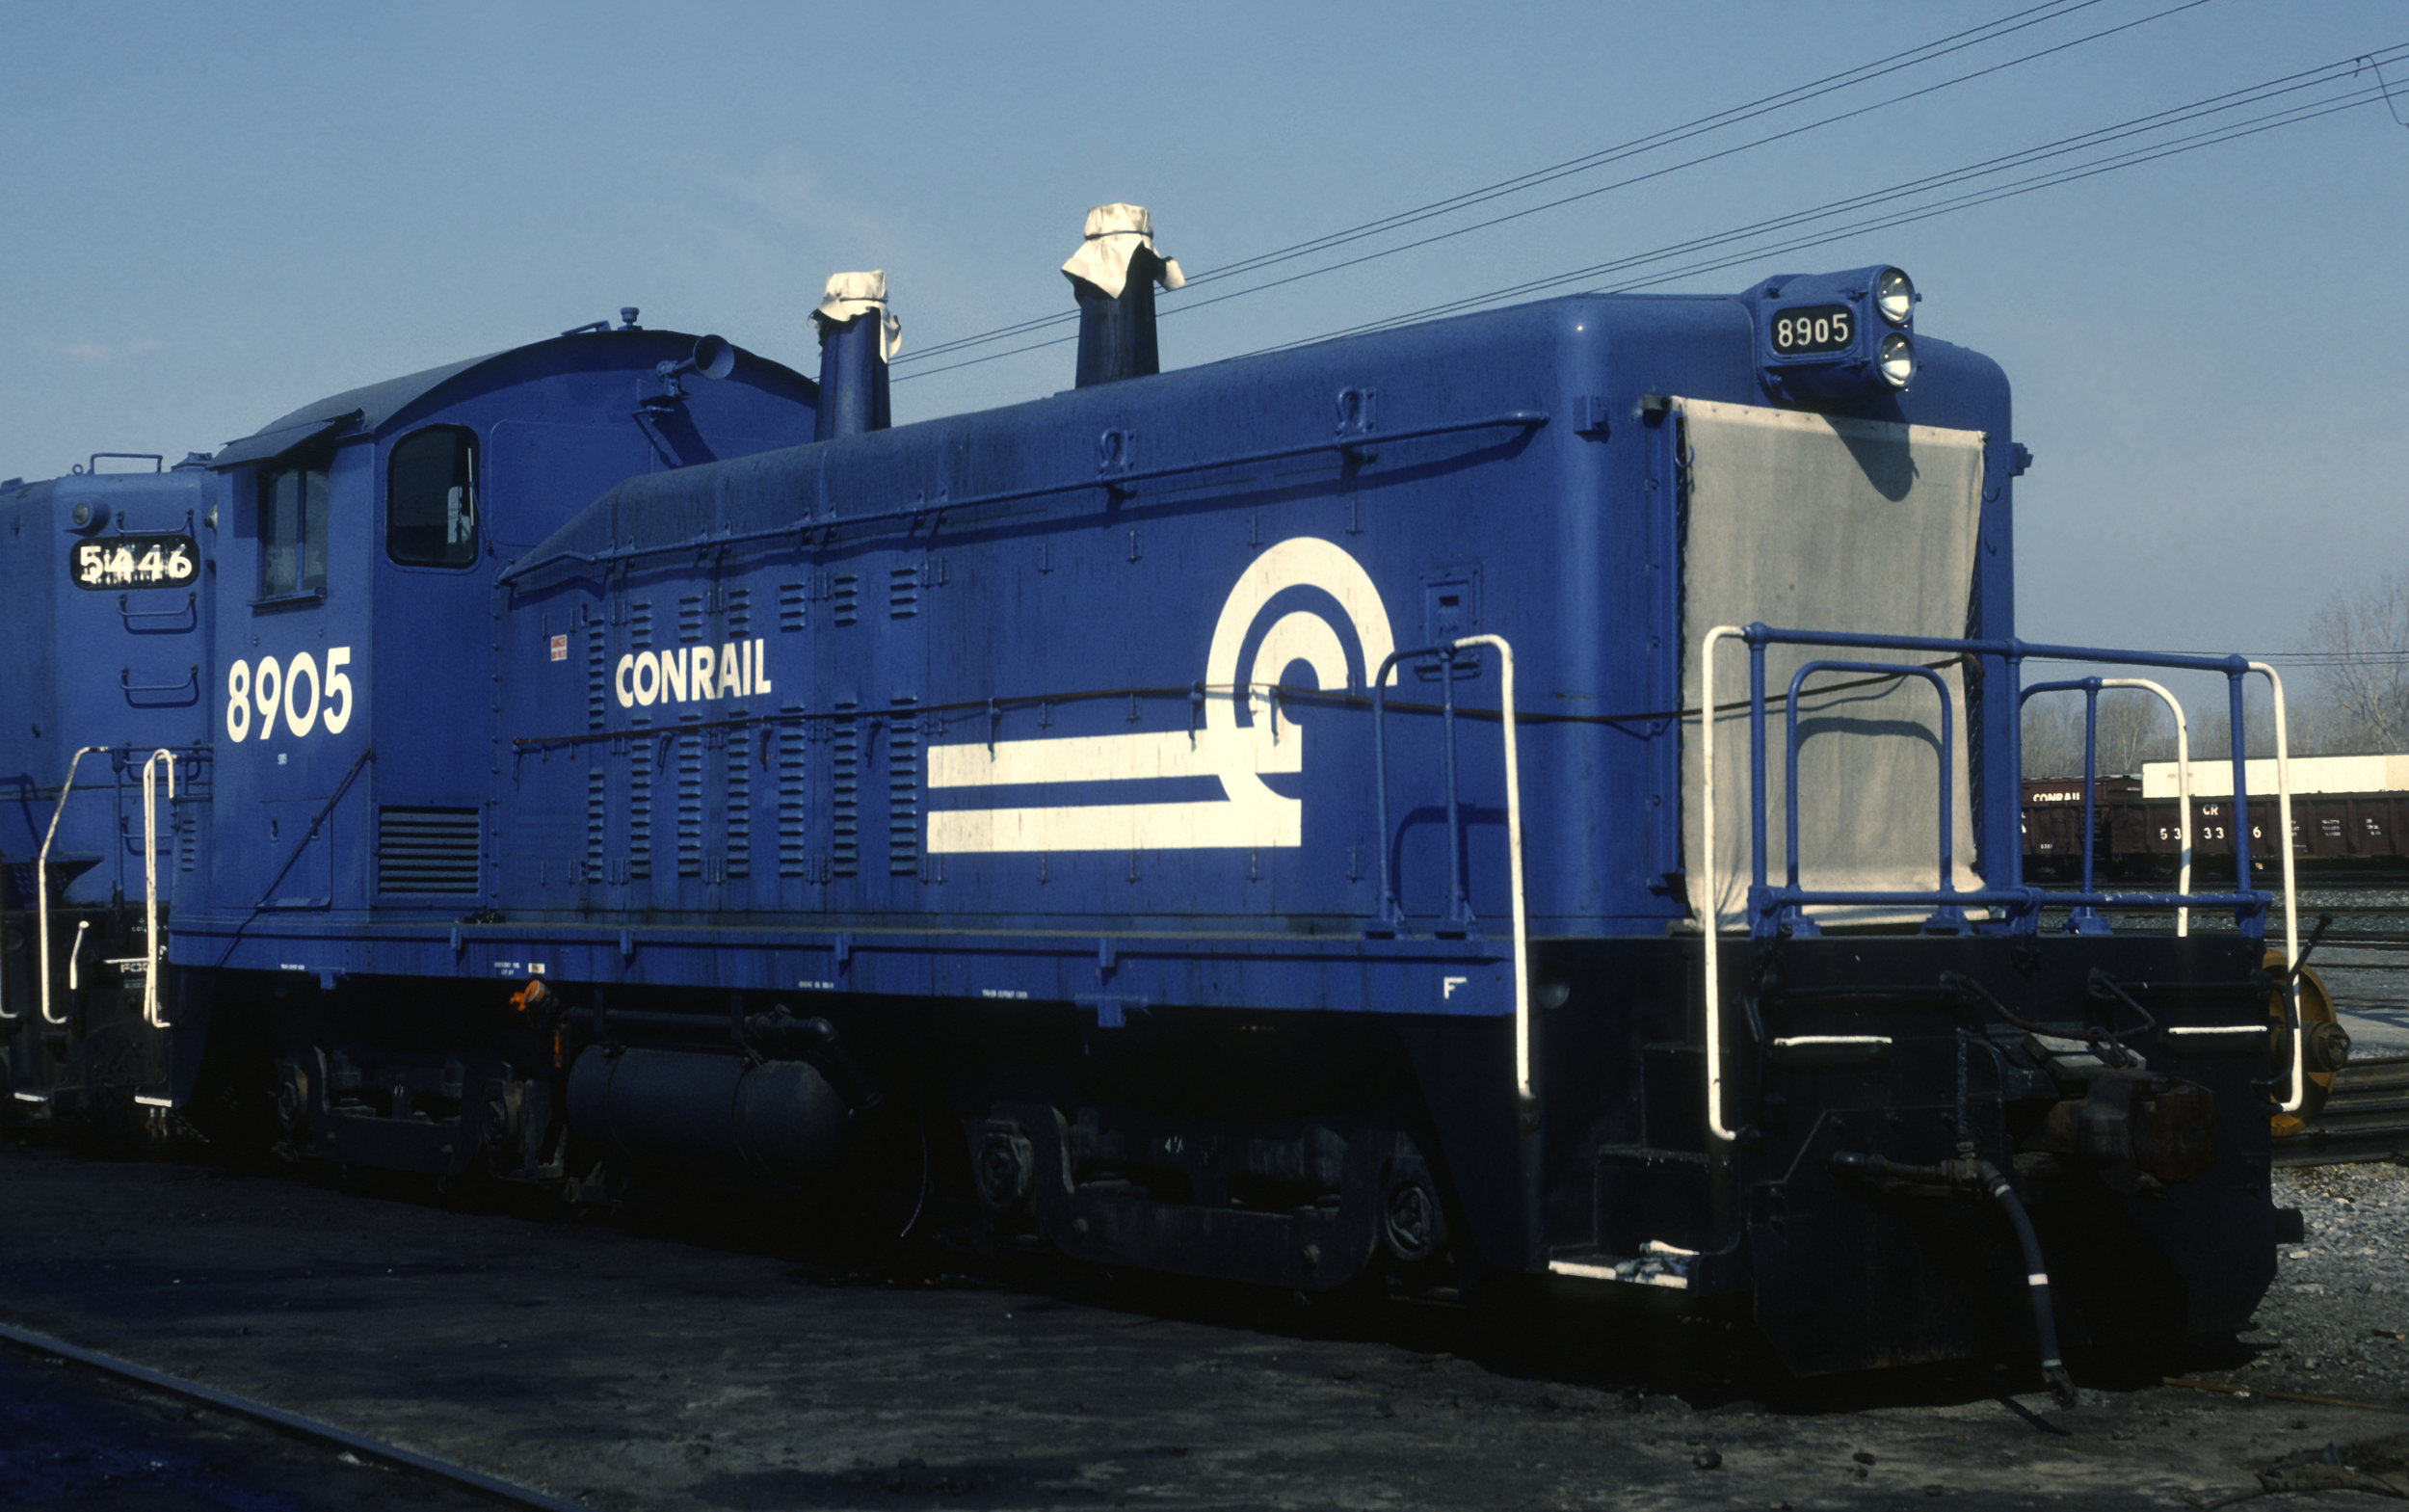 Wearing a slightly different Conrail paint scheme, #8905 is in Buffalo, NY on March 29, 1987.  (John C. Benson photo, J. B. Kerr collection)